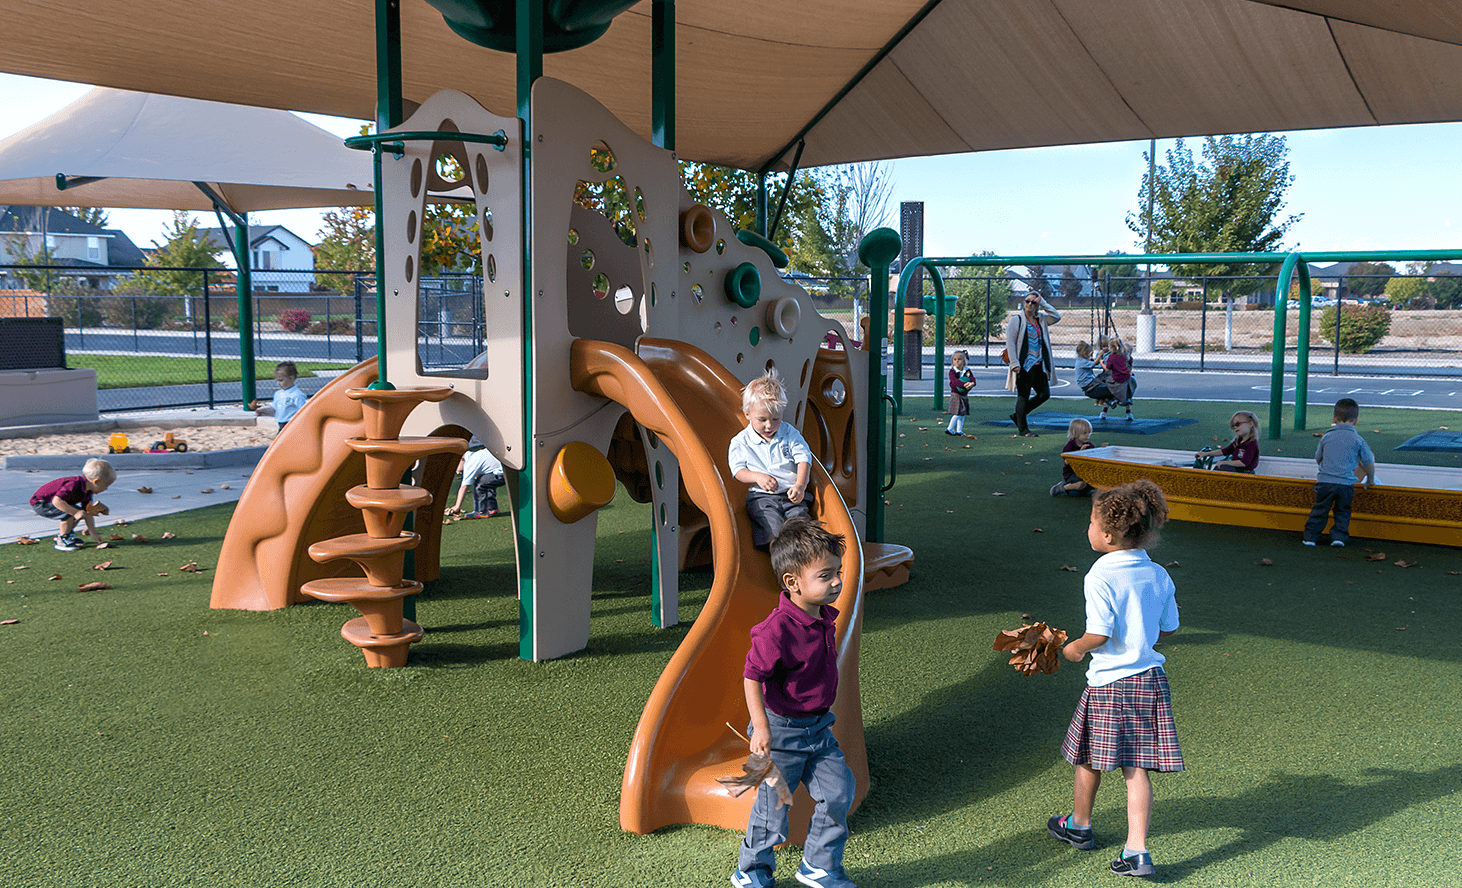 Preschool Playground Fun | Challenger School - Everest | Private School In Meridian, Idaho